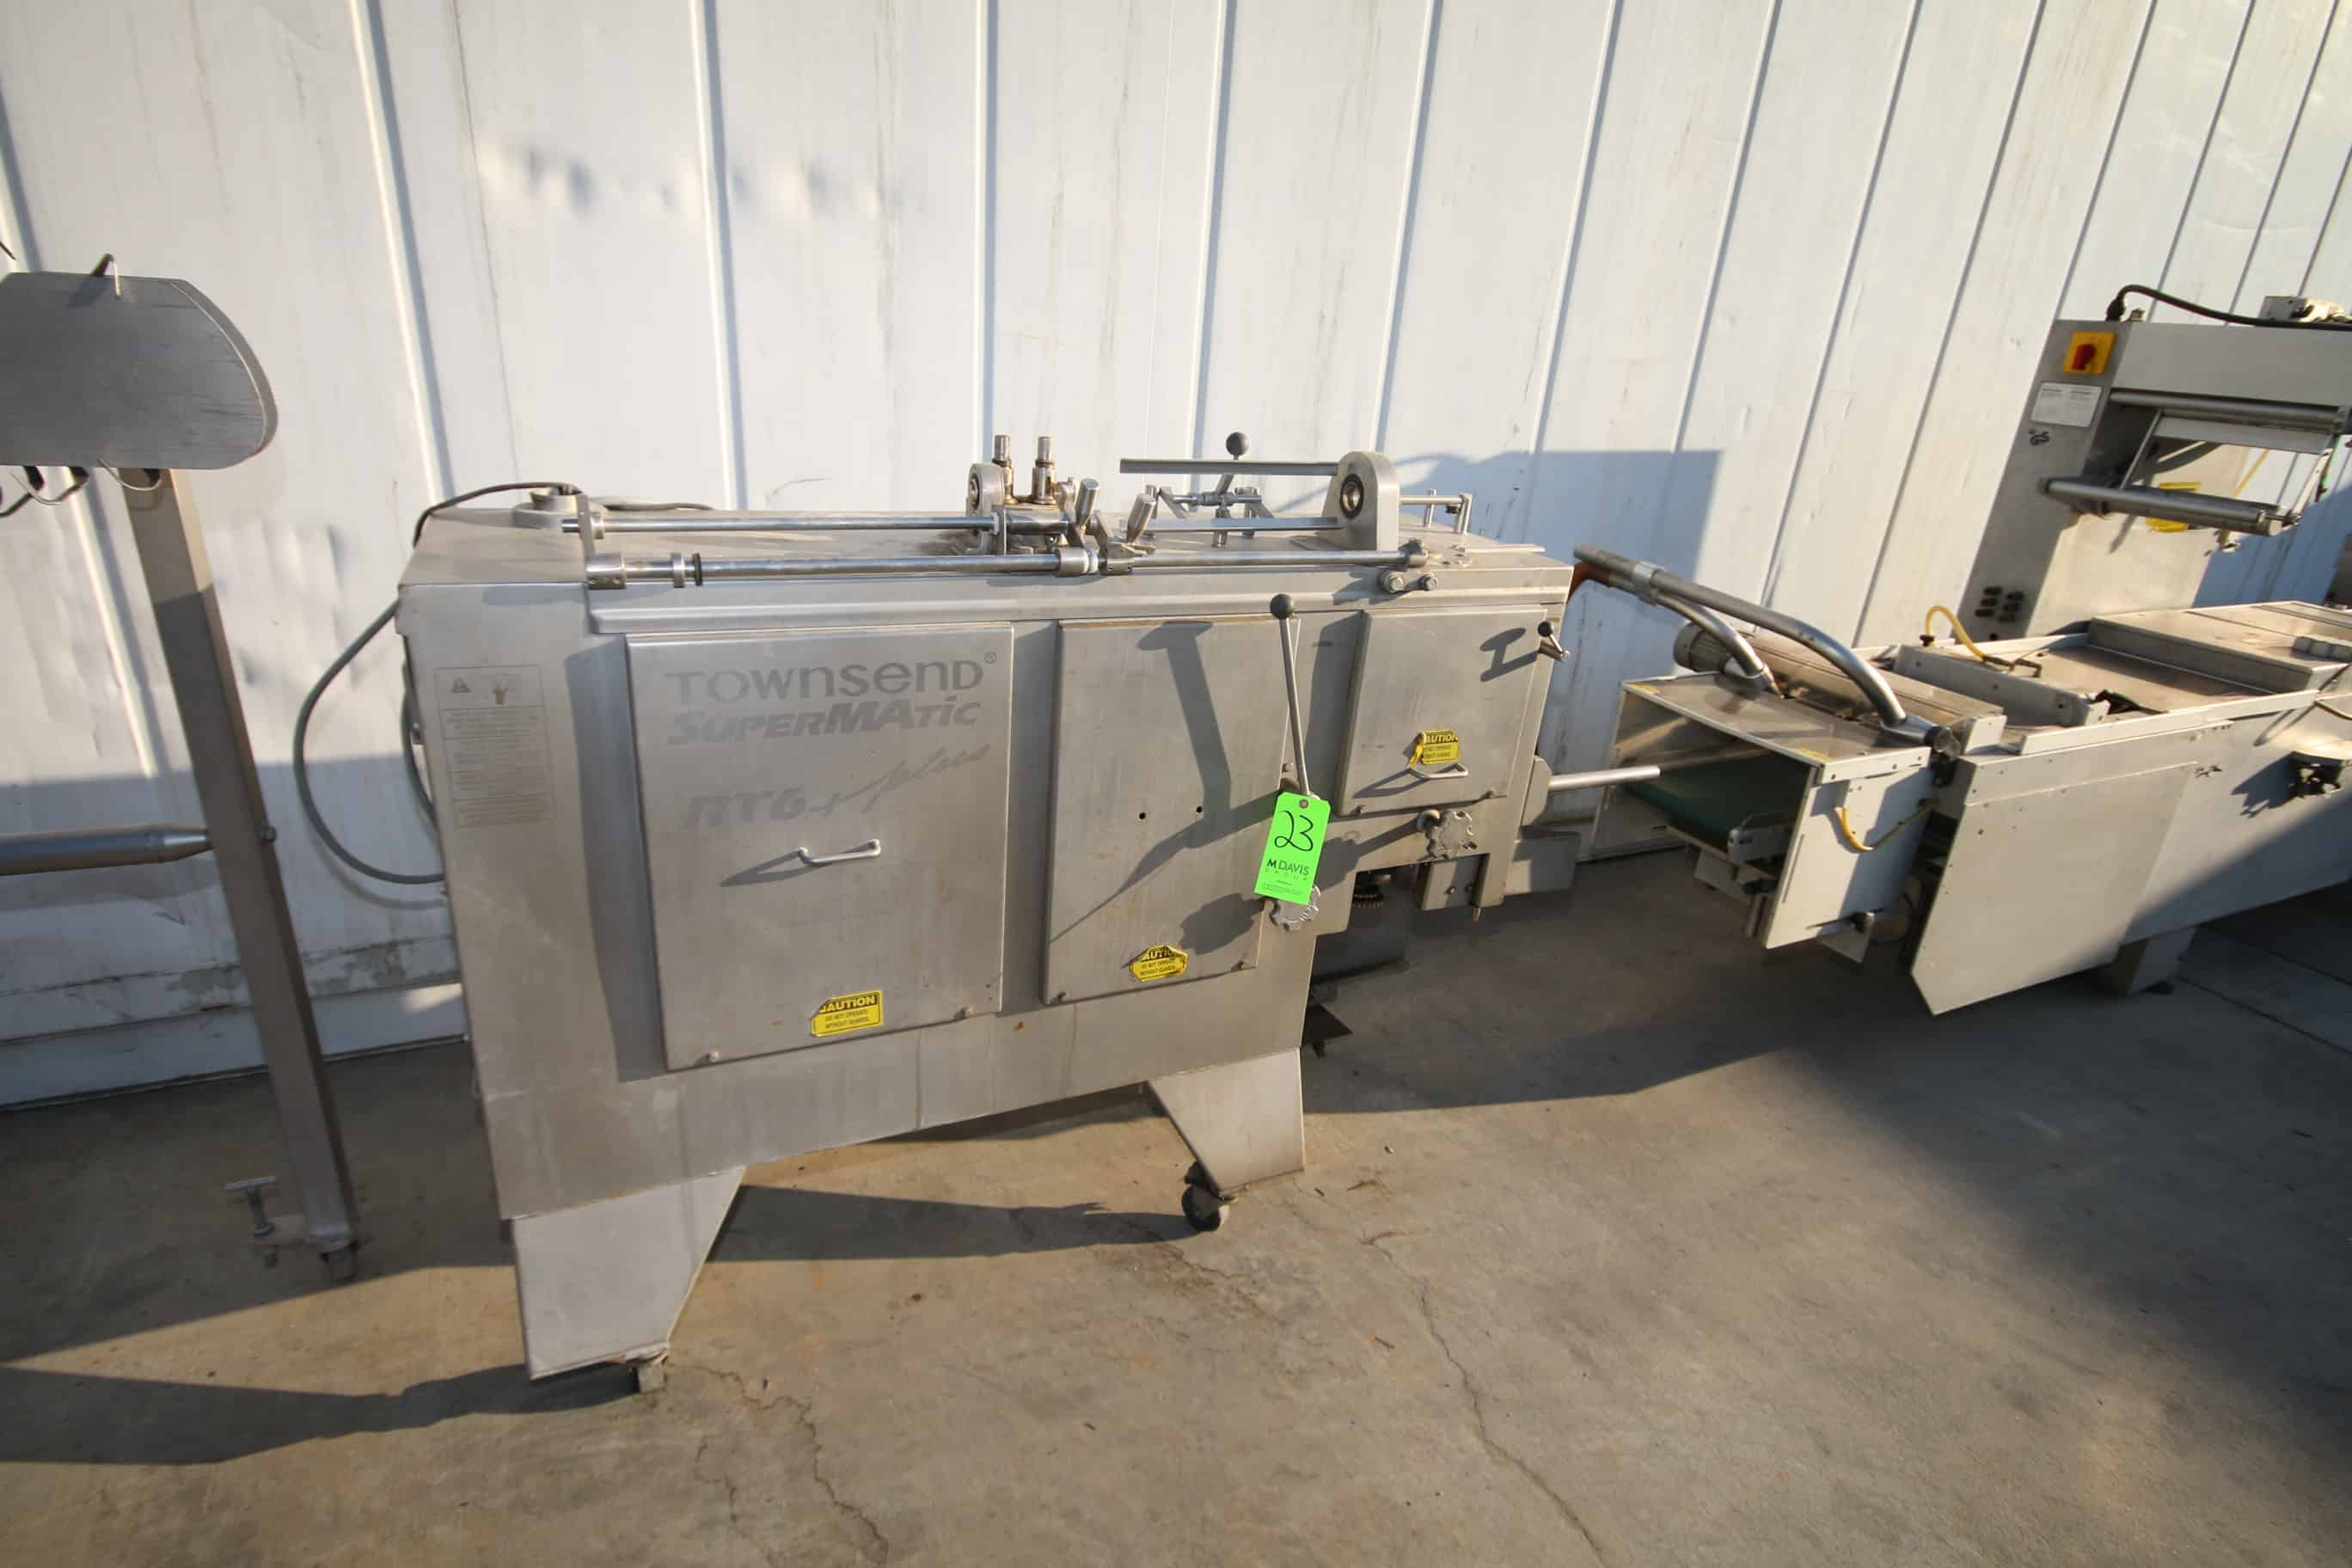 Townsend SuperMatic Linker, M/N RT6 Plus, S/N 264, 480 Volts, 3 Phase, 10 hp Drive, with Aprox. 7' L S/S Linker Belt